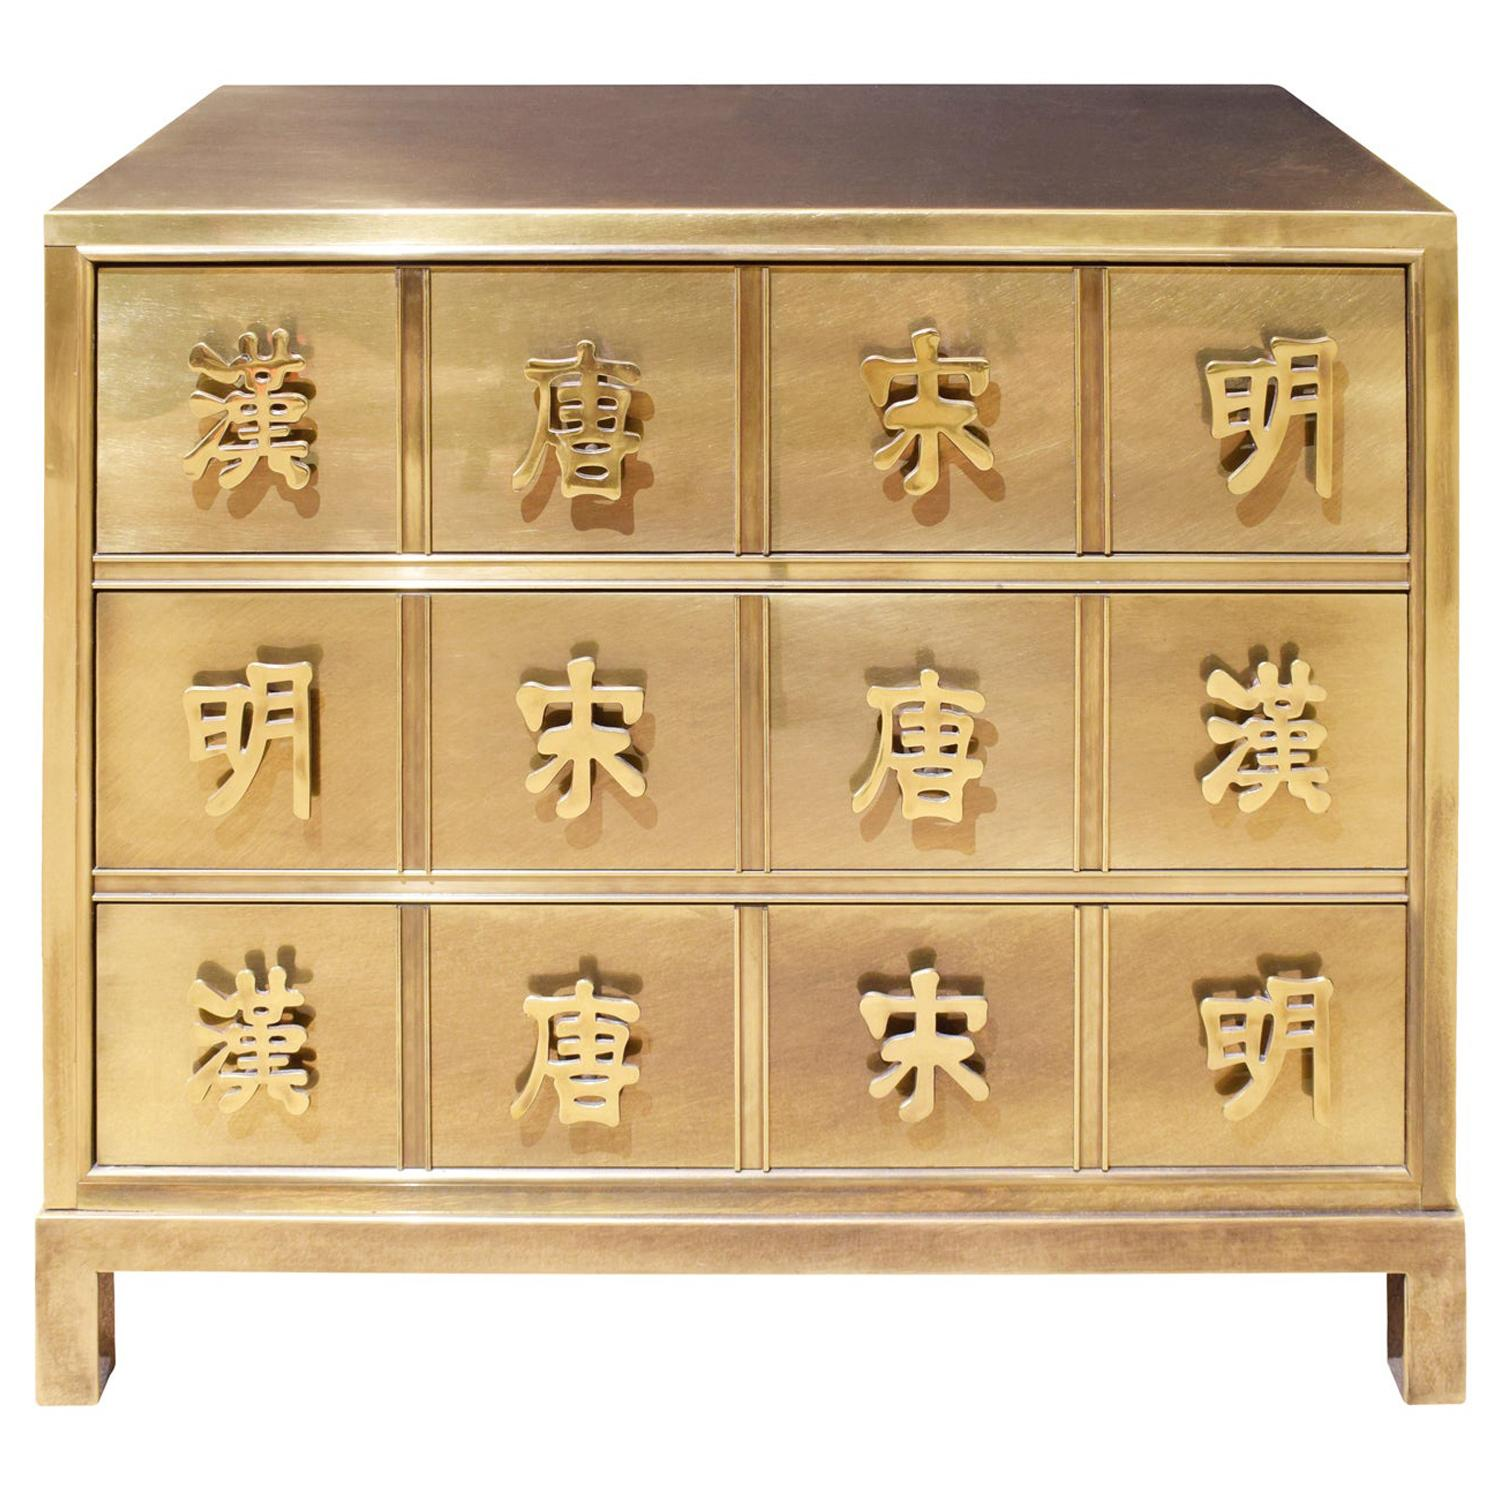 Mastercraft Chest of Drawers in Bronze with Chinese Characters 1970s 'Signed'